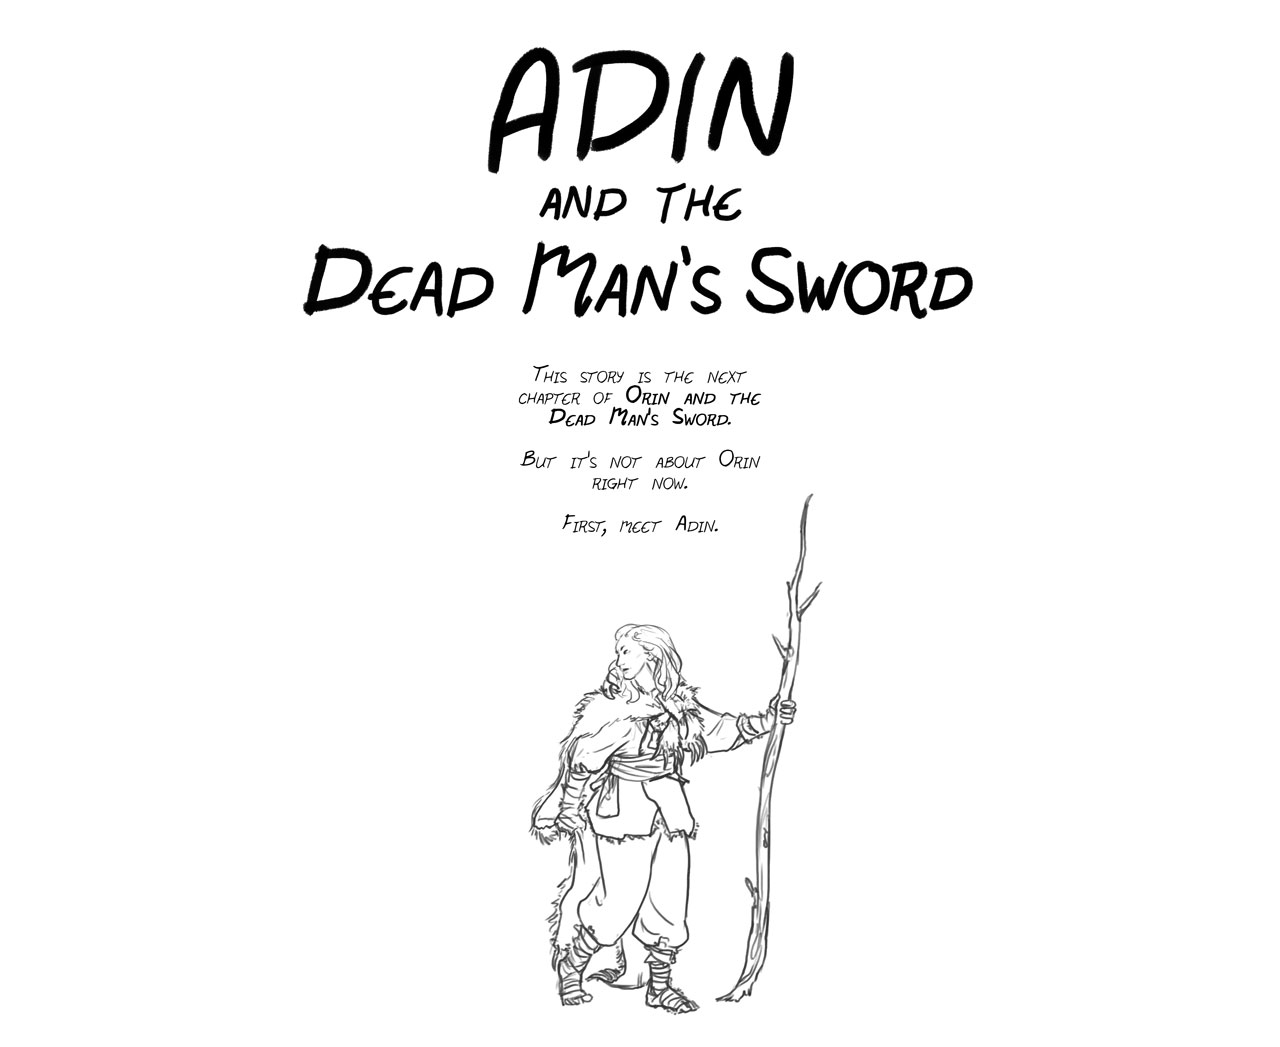 Adin and the Dead Man's Sword – Cover